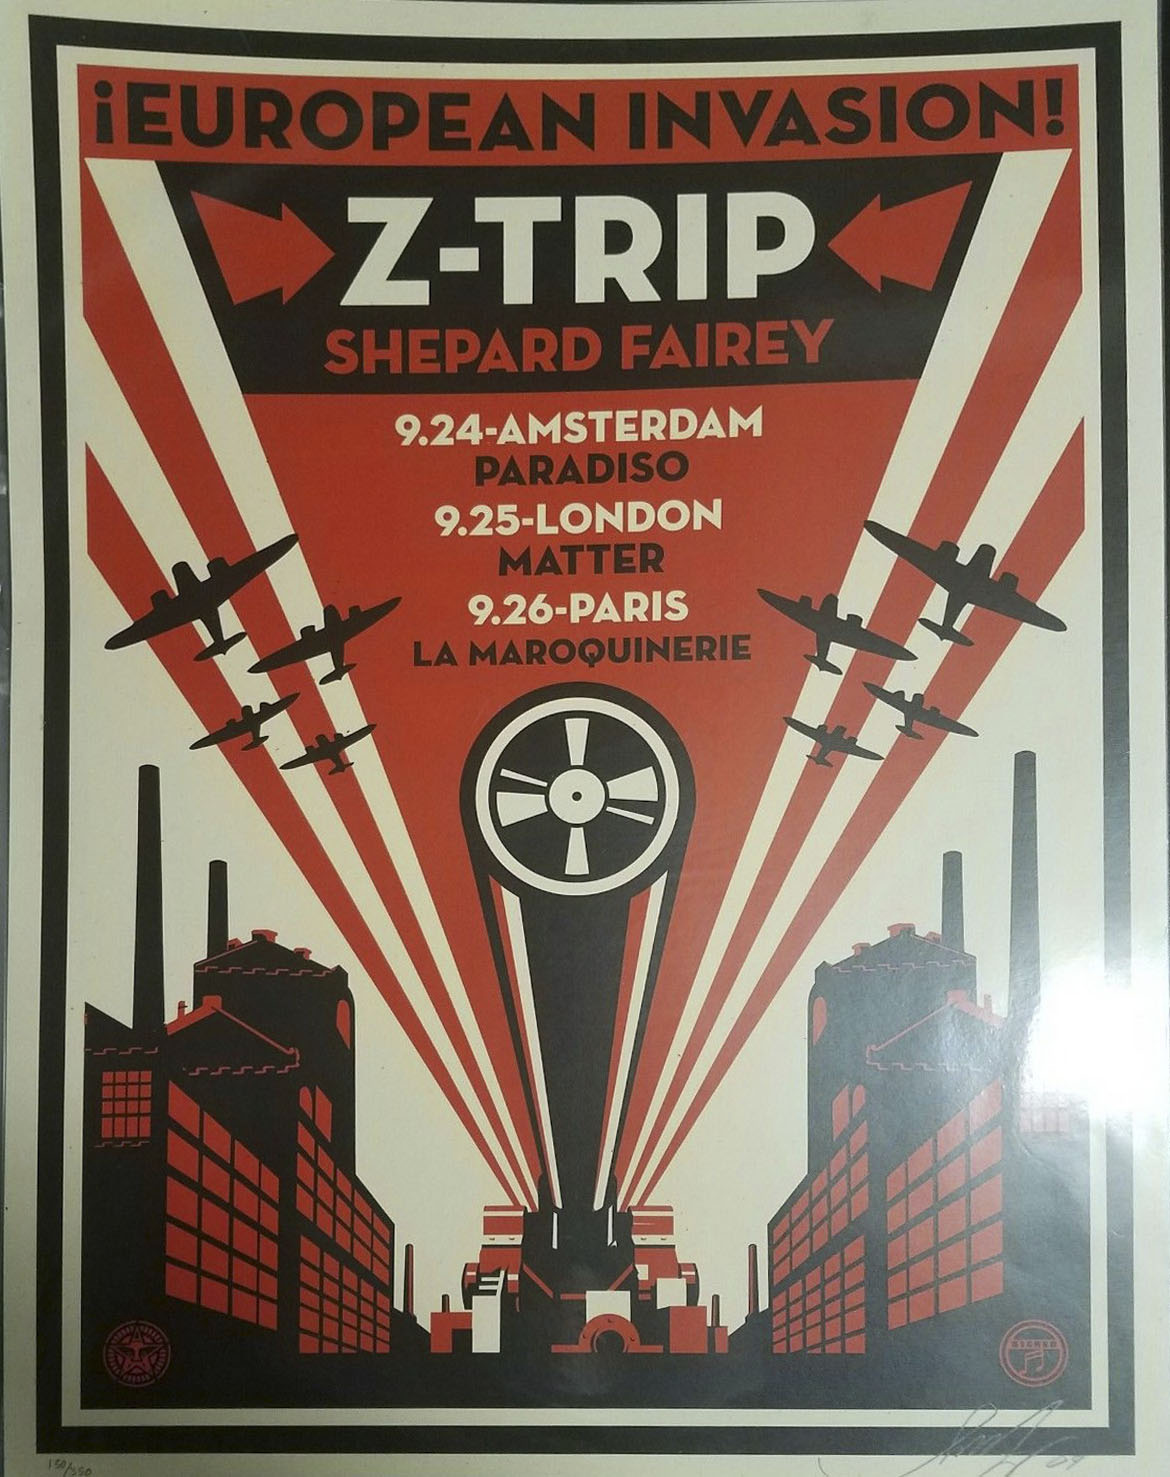 EUROPEAN INVASION Z TRIP by Shepard Fairey